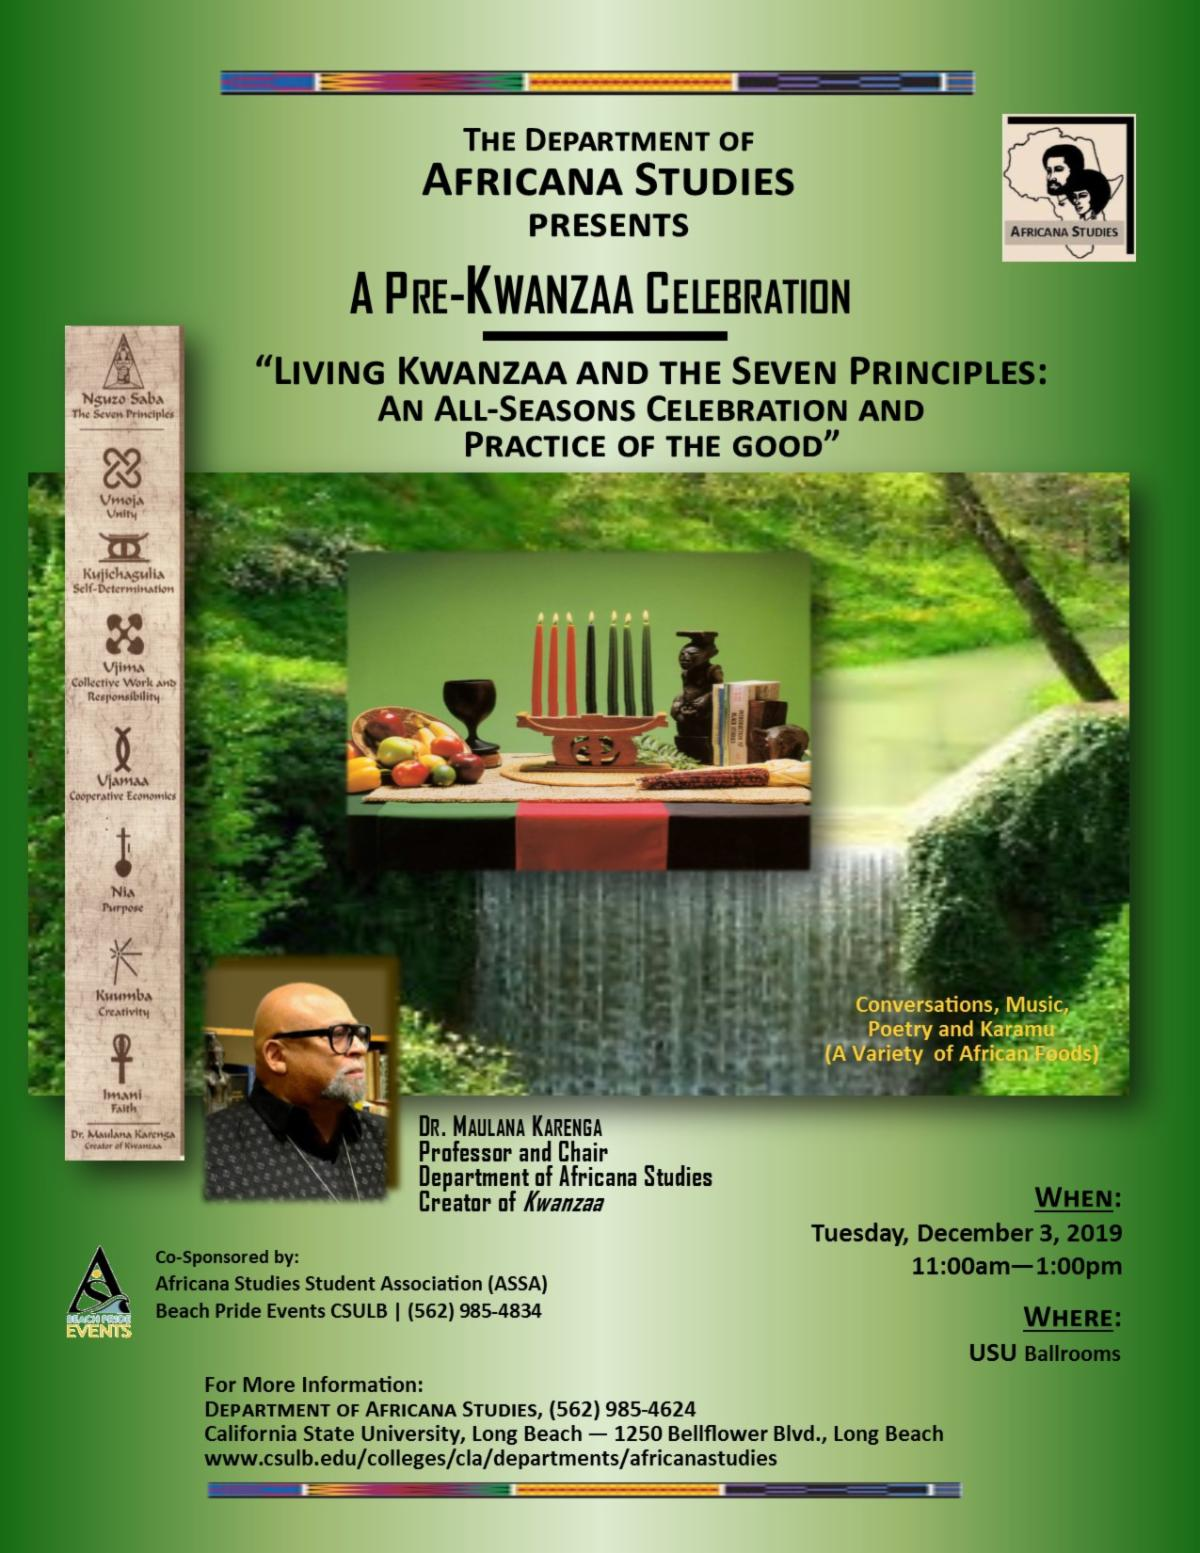 The Department of Kwanza of Africana Studies presents a Pre Kwanzaa Celebration with Dr Maulana Karenga the Professor and Chair as well as Creator of Kwanzaa